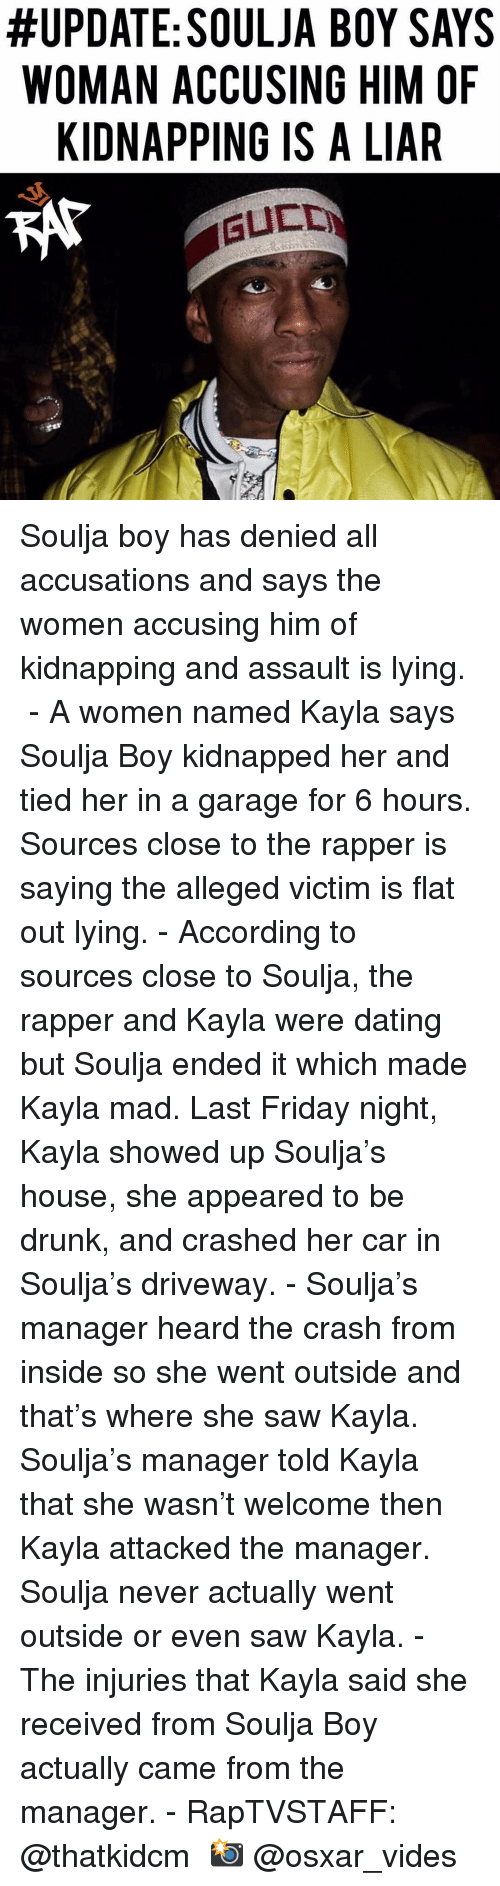 driveway:  #UPDATE: SOULJA BOY SAYS  WOMAN ACCUSING HIM OF  KIDNAPPING IS A LIAR Soulja boy has denied all accusations and says the women accusing him of kidnapping and assault is lying. ⁣ -⁣ A women named Kayla says Soulja Boy kidnapped her and tied her in a garage for 6 hours. Sources close to the rapper is saying the alleged victim is flat out lying.⁣ -⁣ According to sources close to Soulja, the rapper and Kayla were dating but Soulja ended it which made Kayla mad. Last Friday night, Kayla showed up Soulja's house, she appeared to be drunk, and crashed her car in Soulja's driveway.⁣ -⁣ Soulja's manager heard the crash from inside so she went outside and that's where she saw Kayla. Soulja's manager told Kayla that she wasn't welcome then Kayla attacked the manager. Soulja never actually went outside or even saw Kayla.⁣ -⁣ The injuries that Kayla said she received from Soulja Boy actually came from the manager.⁣ -⁣ RapTVSTAFF: @thatkidcm⁣ 📸 @osxar_vides⁣